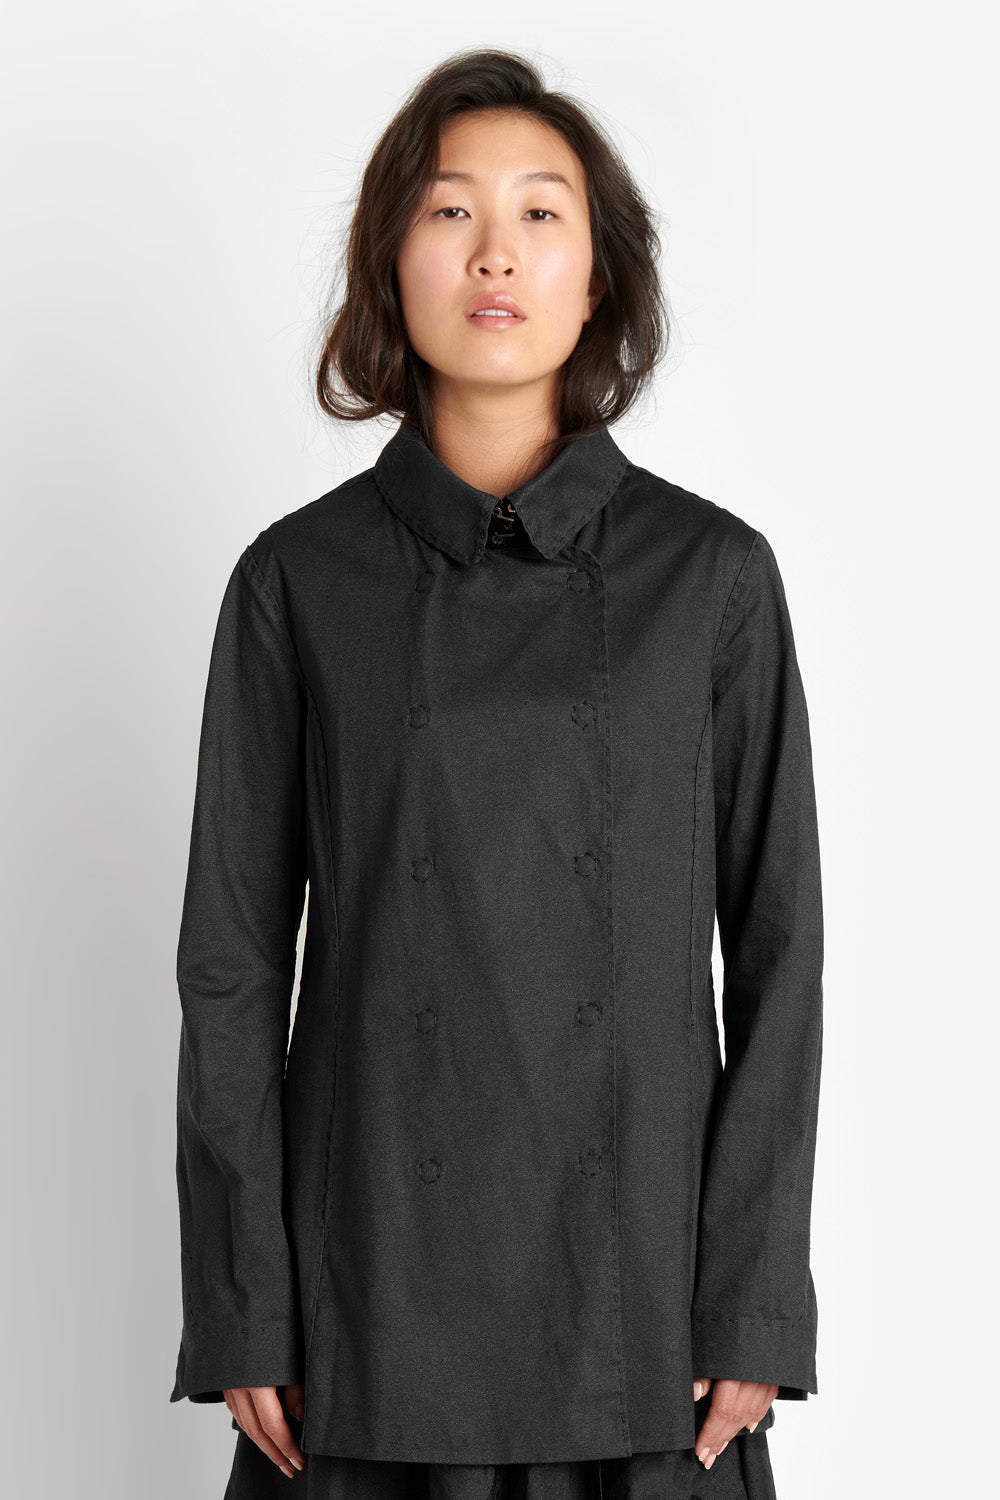 Alabama Chanin The Peacoat Women's Organic Cotton Peacoat in Black with Hand-painted FInish